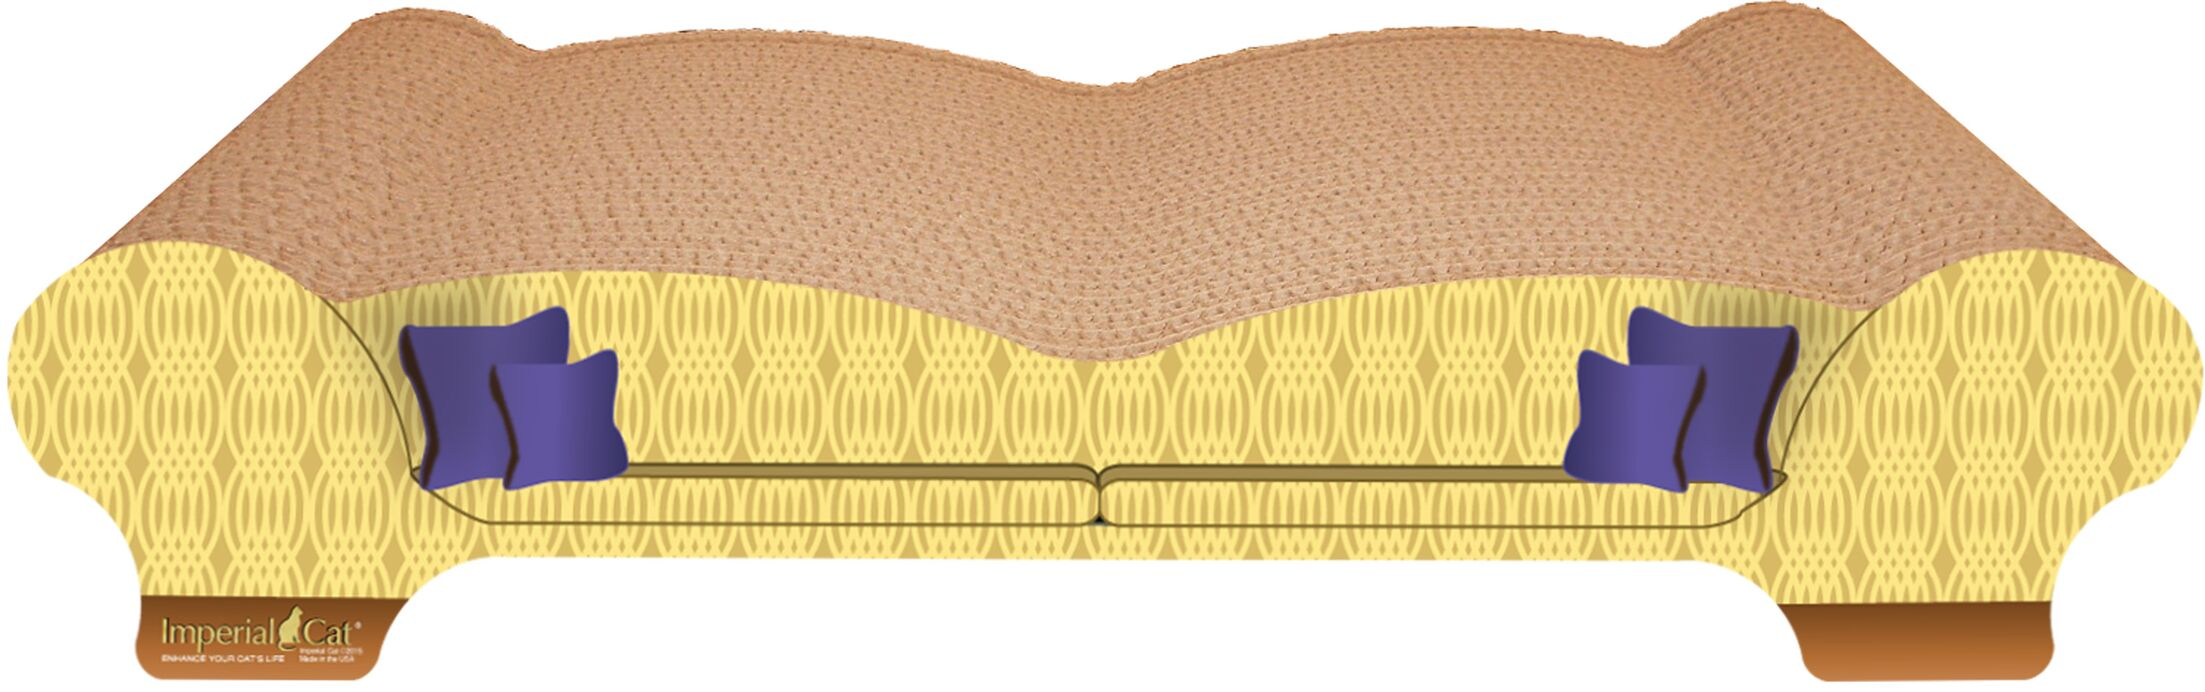 Scratch 'n Shapes Love Seat Recycled Paper Scratching Board Style: Honeycomb